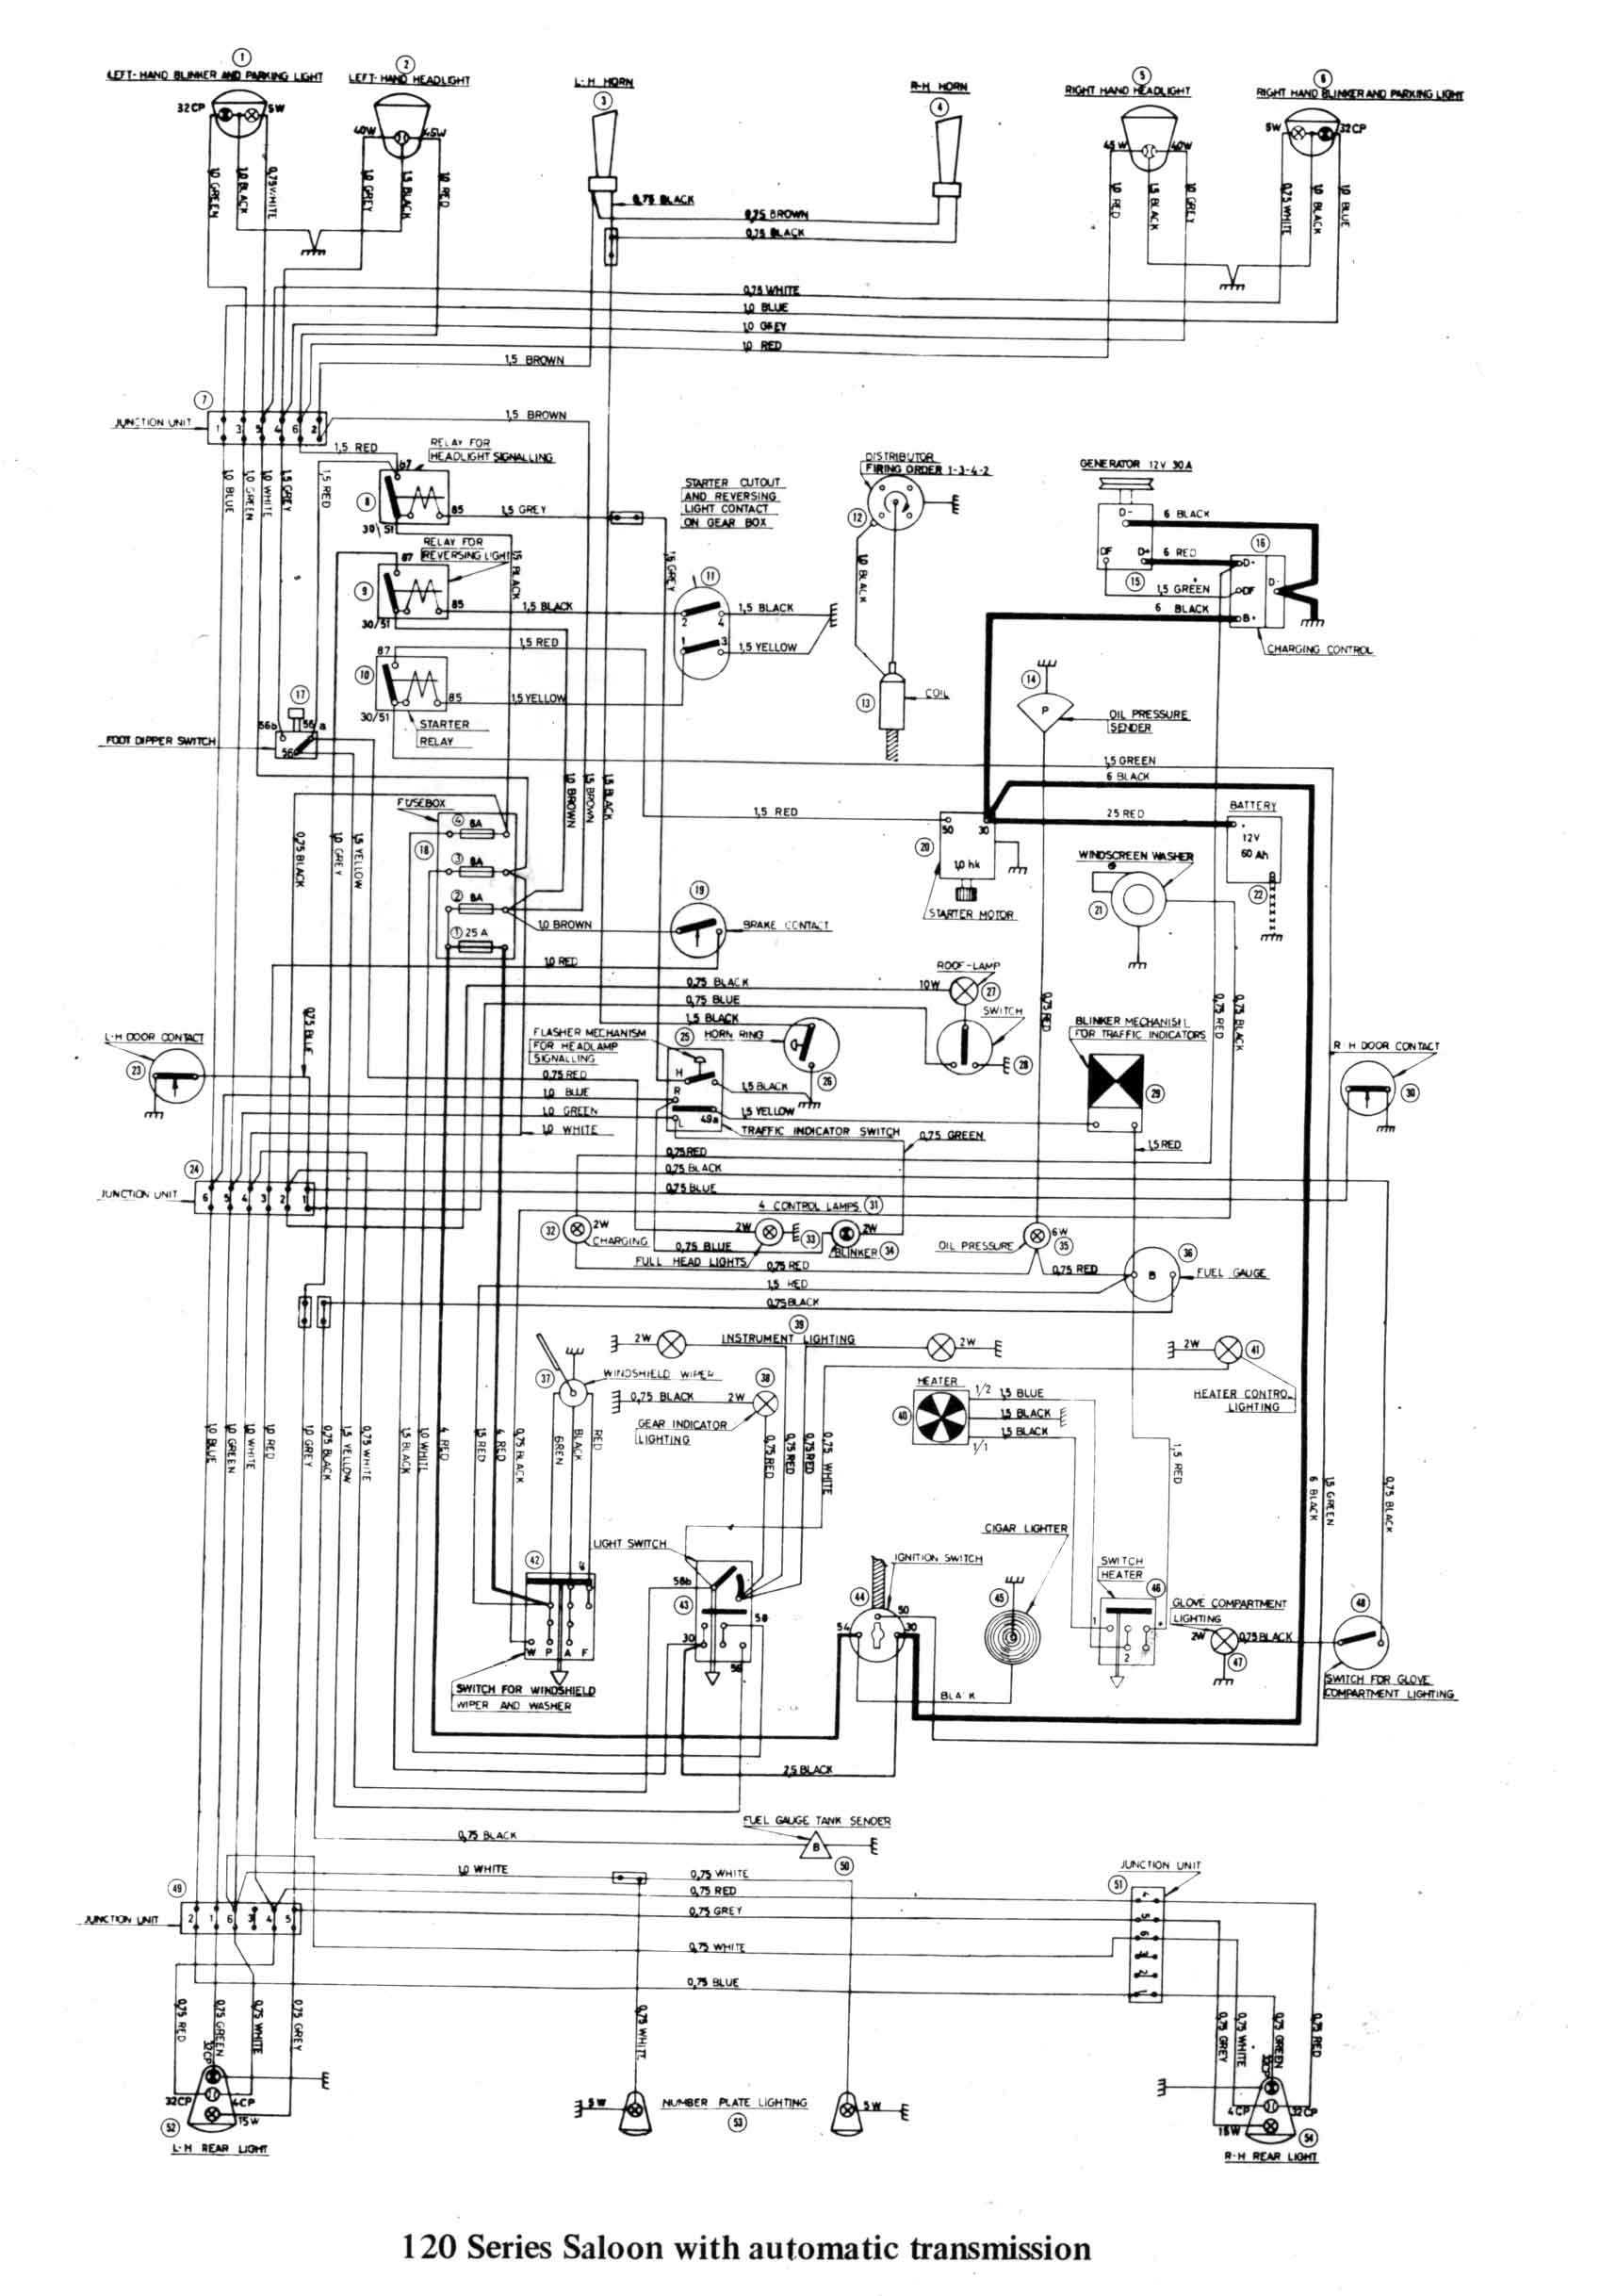 2006 Vw Jetta Engine Diagram Wiring Library 2005 Volvo S40 Diagrams Rh Diagramchartwiki Partment